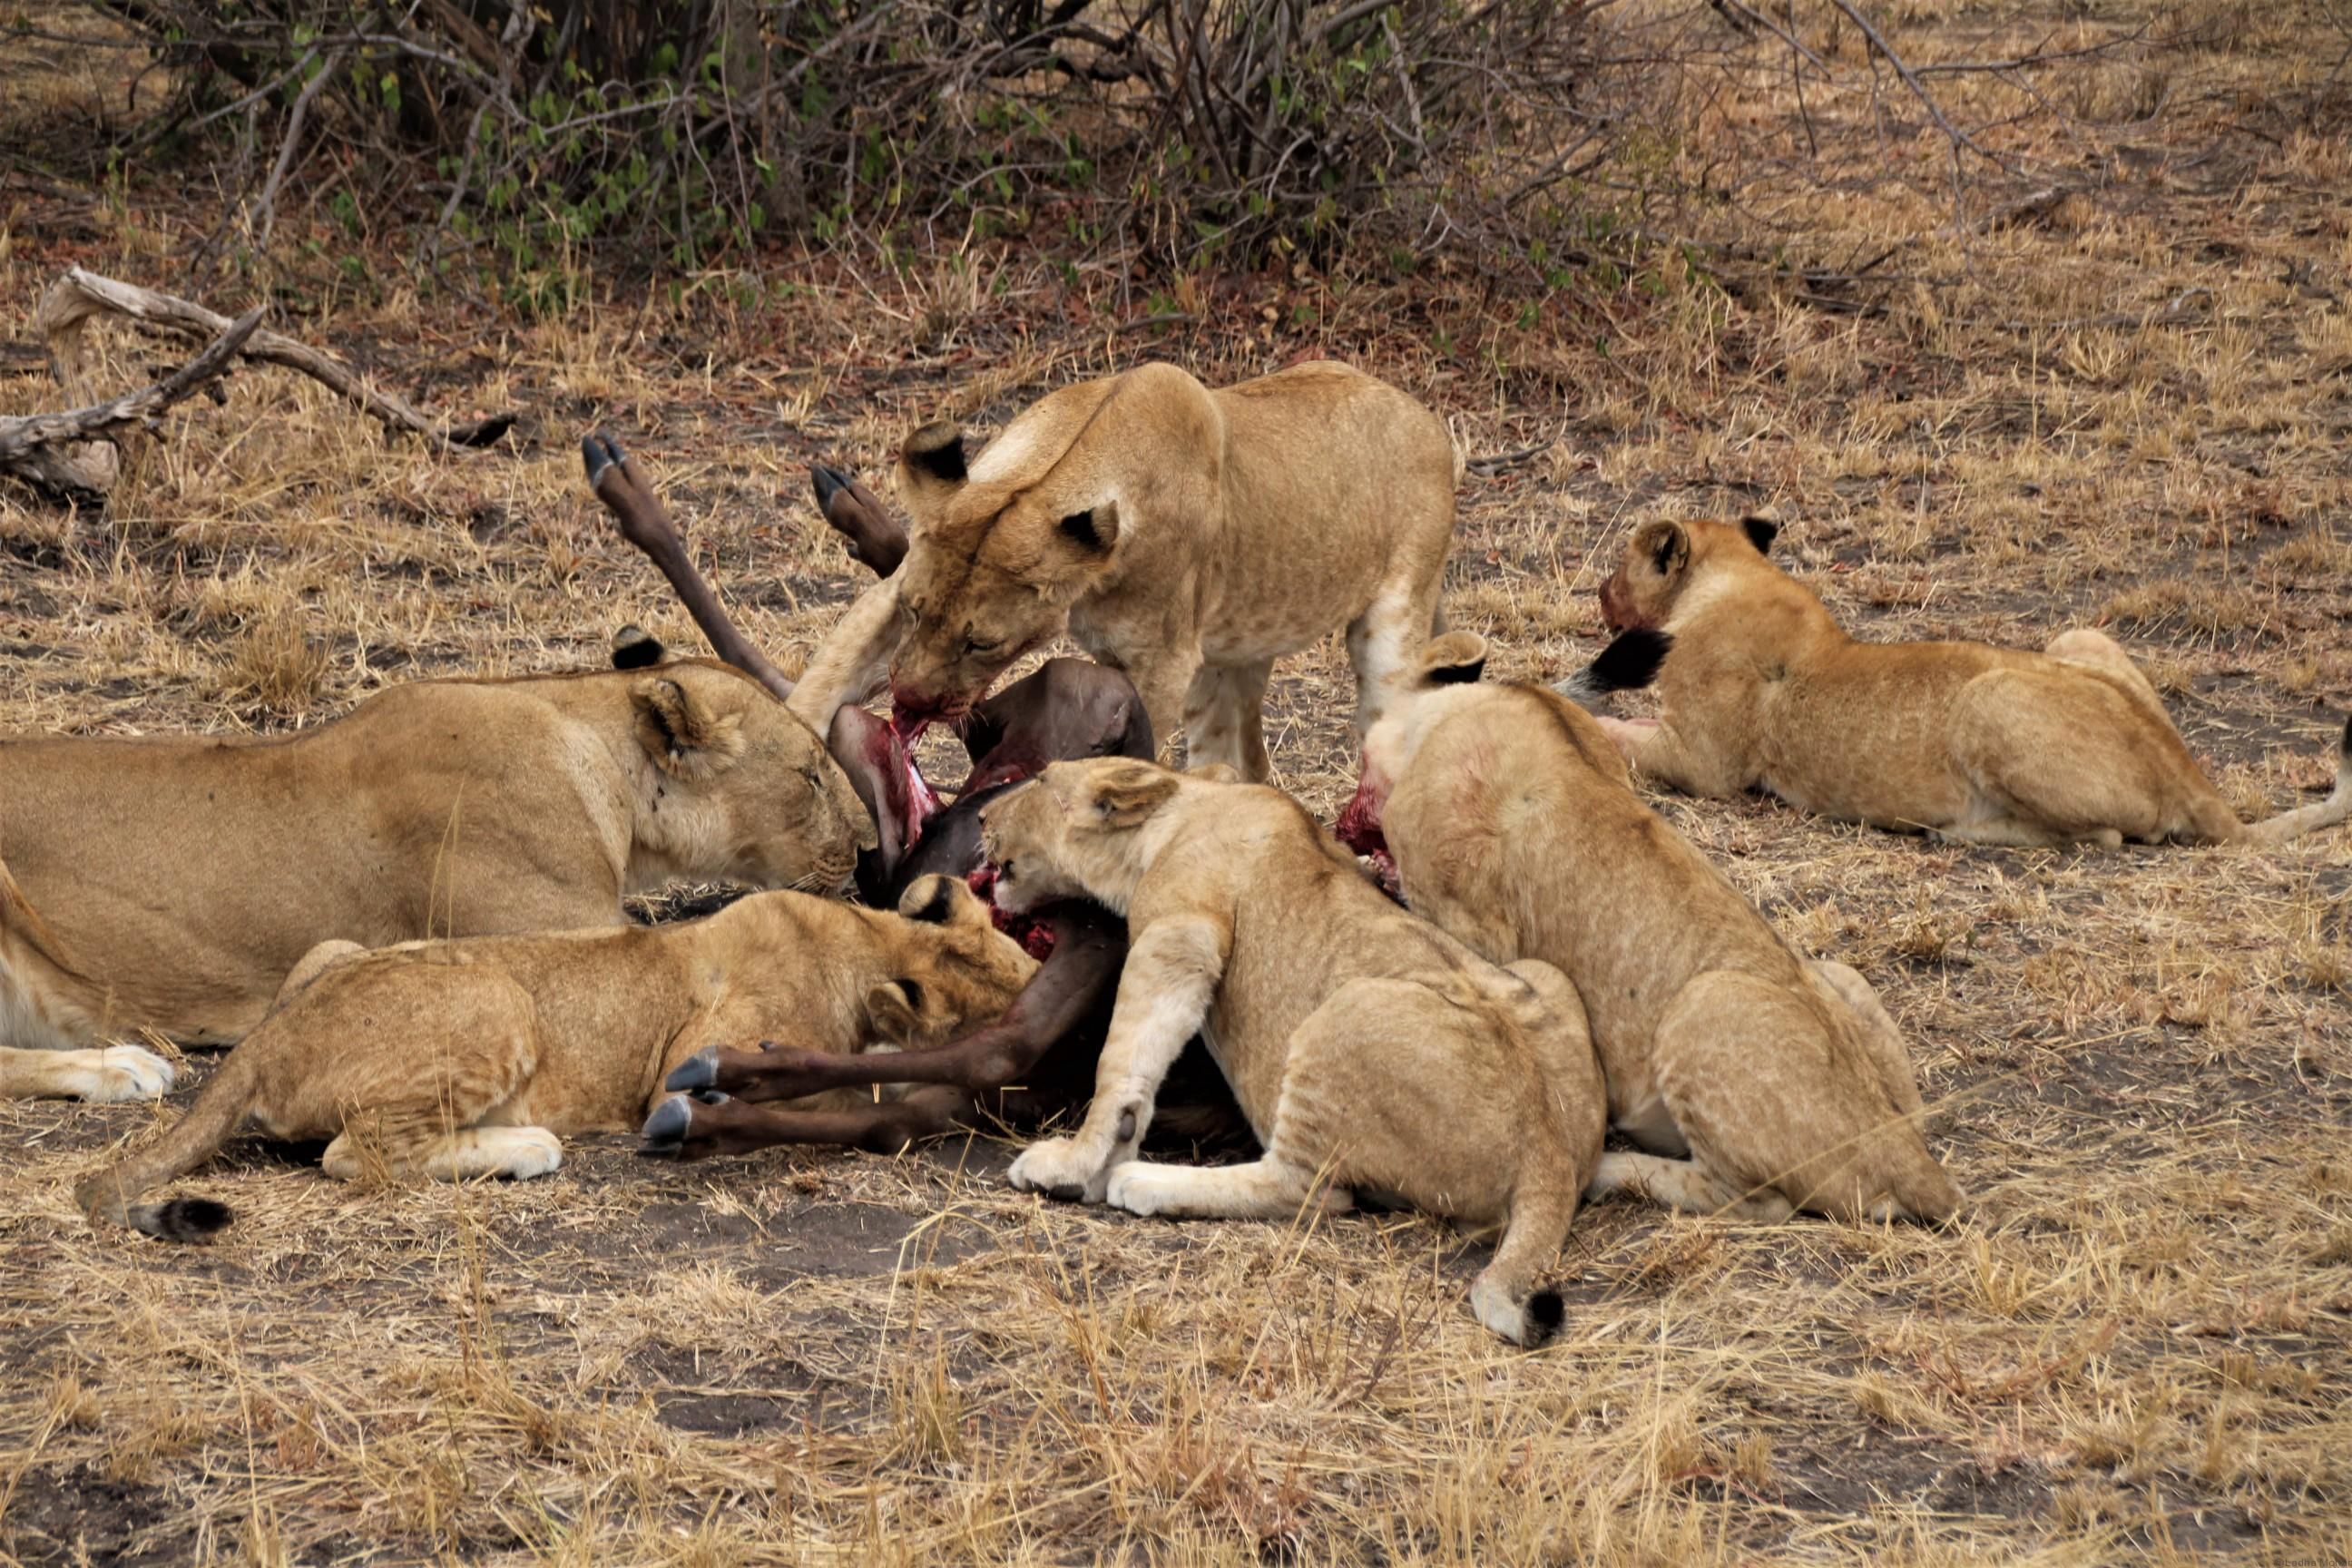 Wildebeest Kill - Lions and Cubs eating their meal